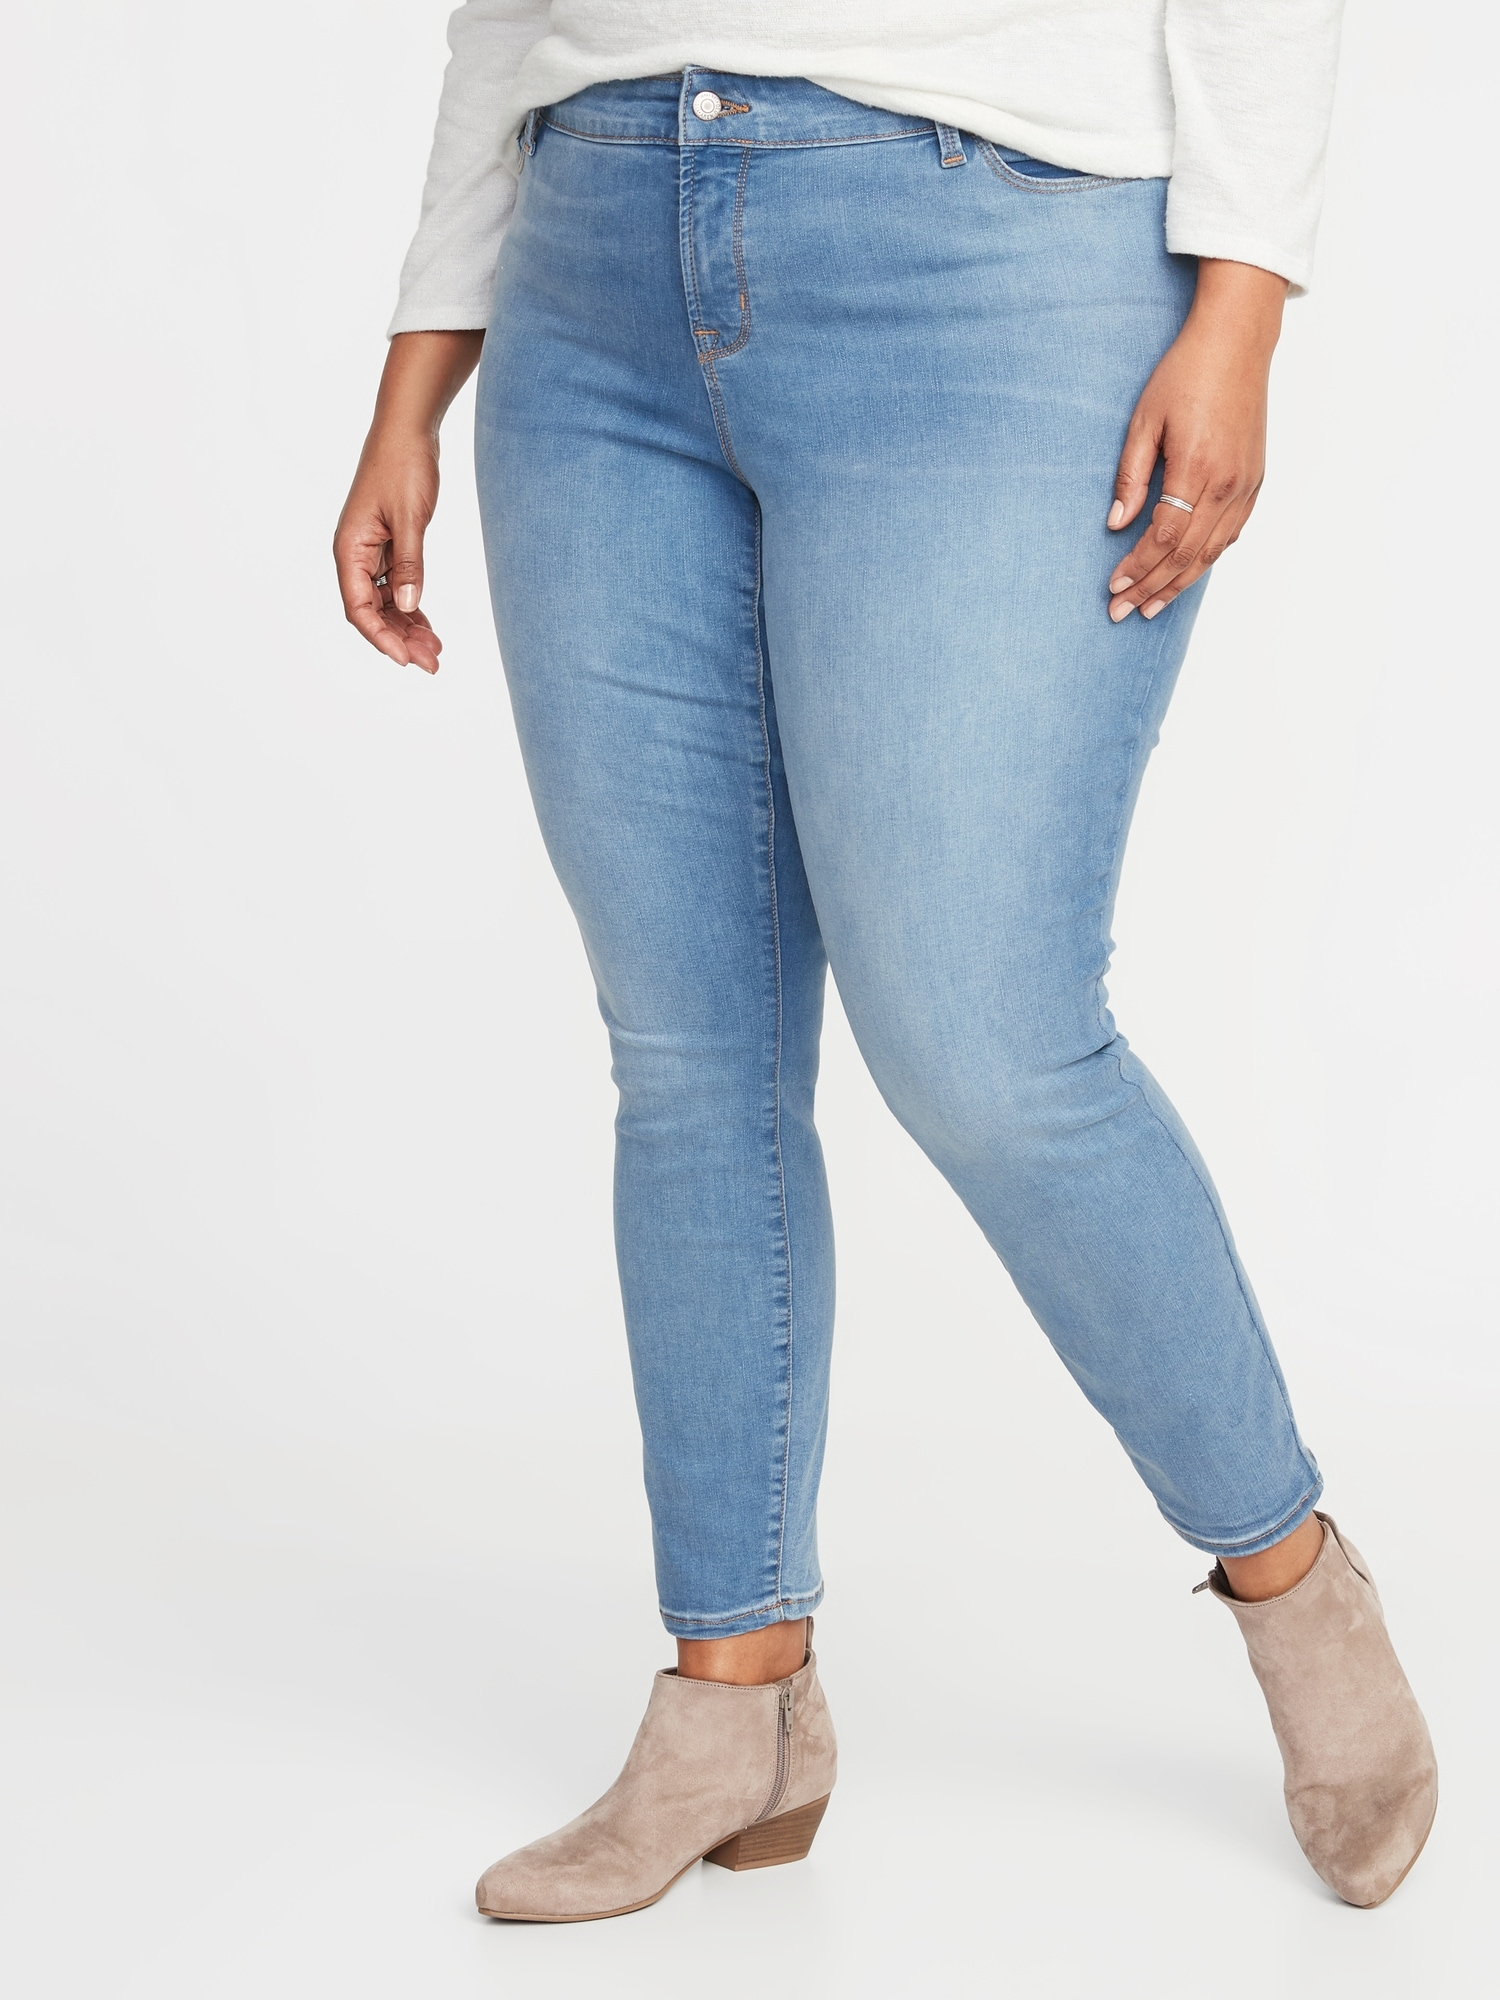 4fd01a4da5cf2 High-Rise Secret-Slim Pockets Rockstar Super Skinny Plus-Size Jeans ...